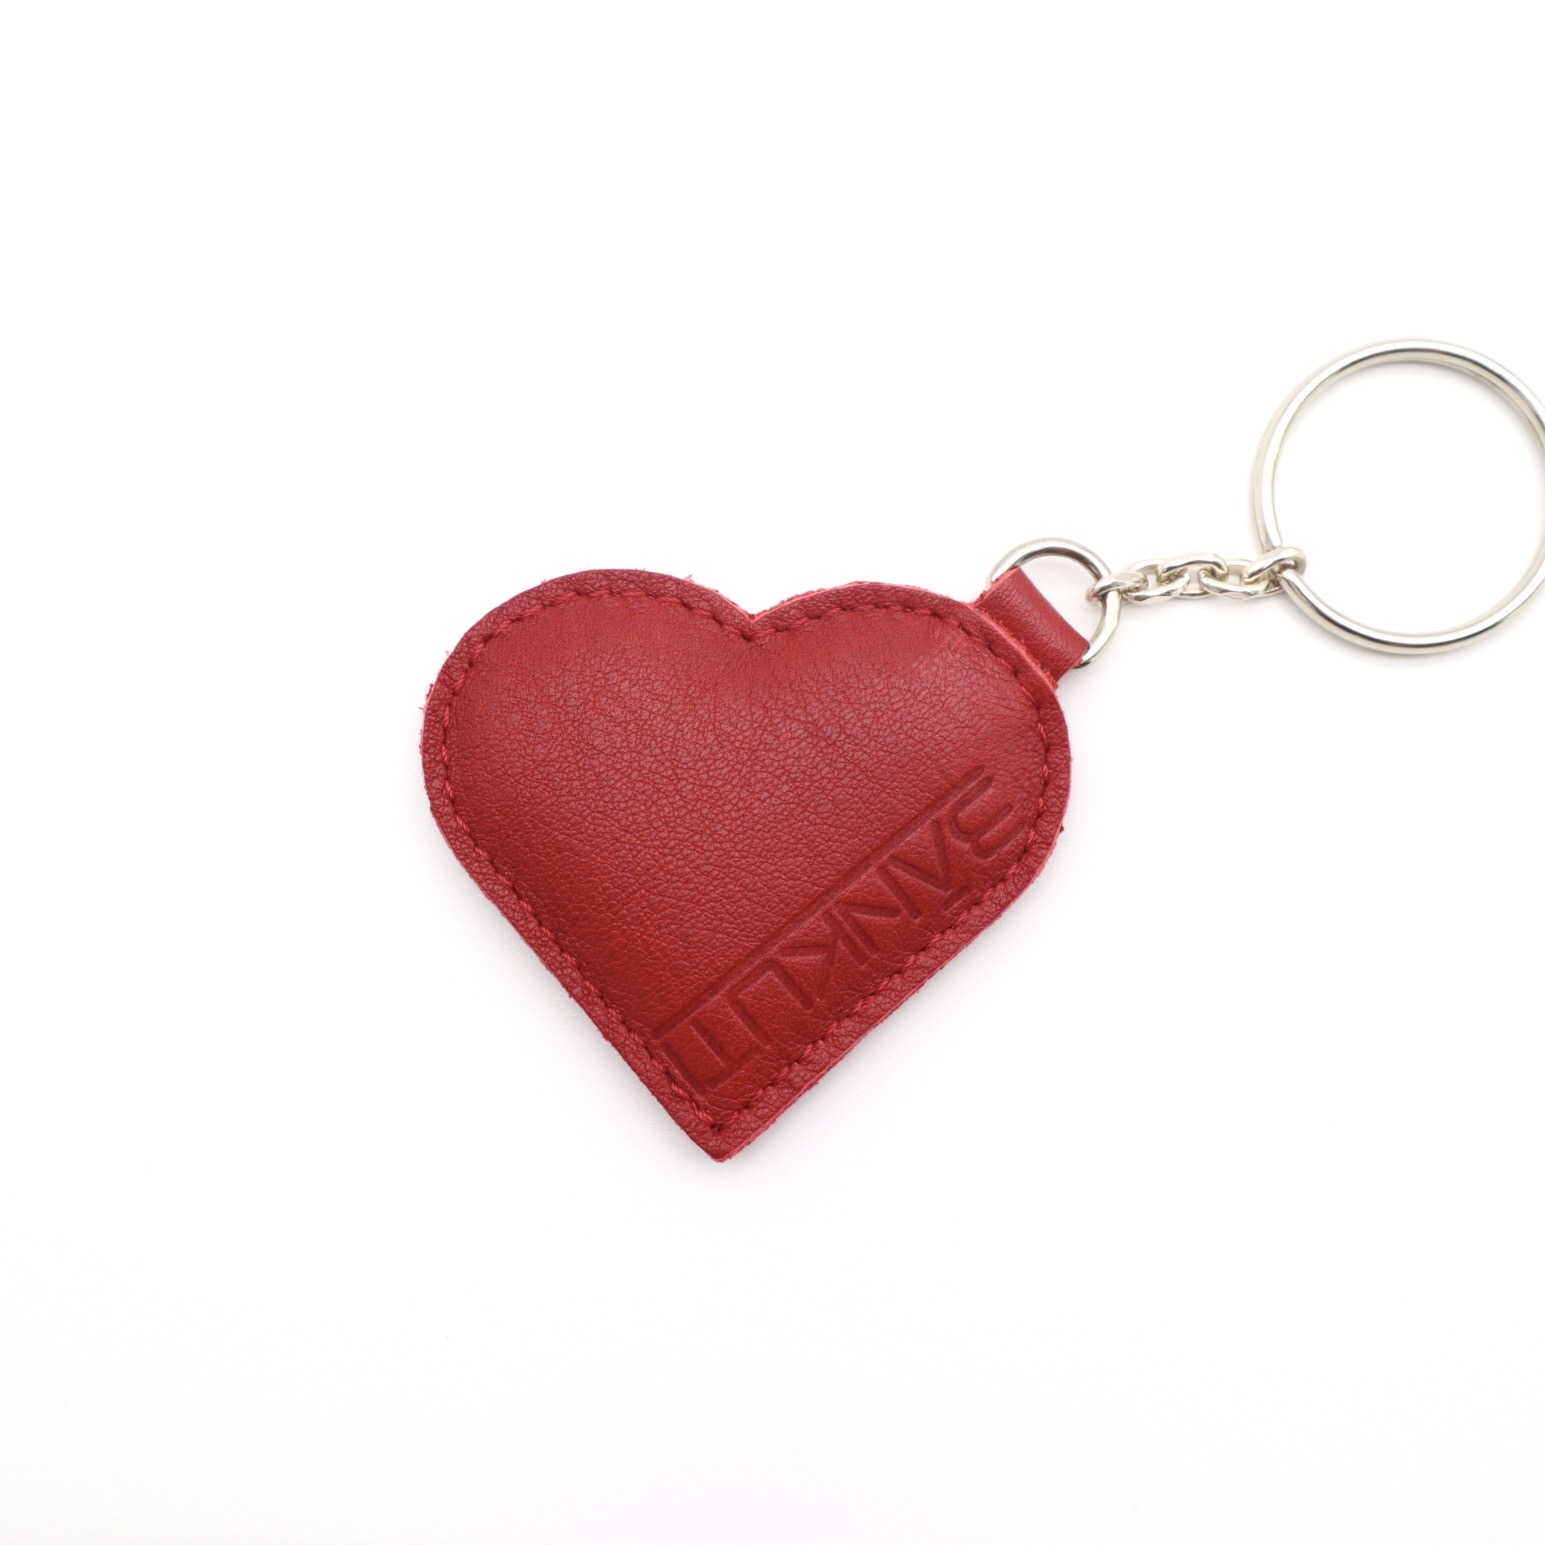 LEATHER HEART KEYCHARM CHERRY RED